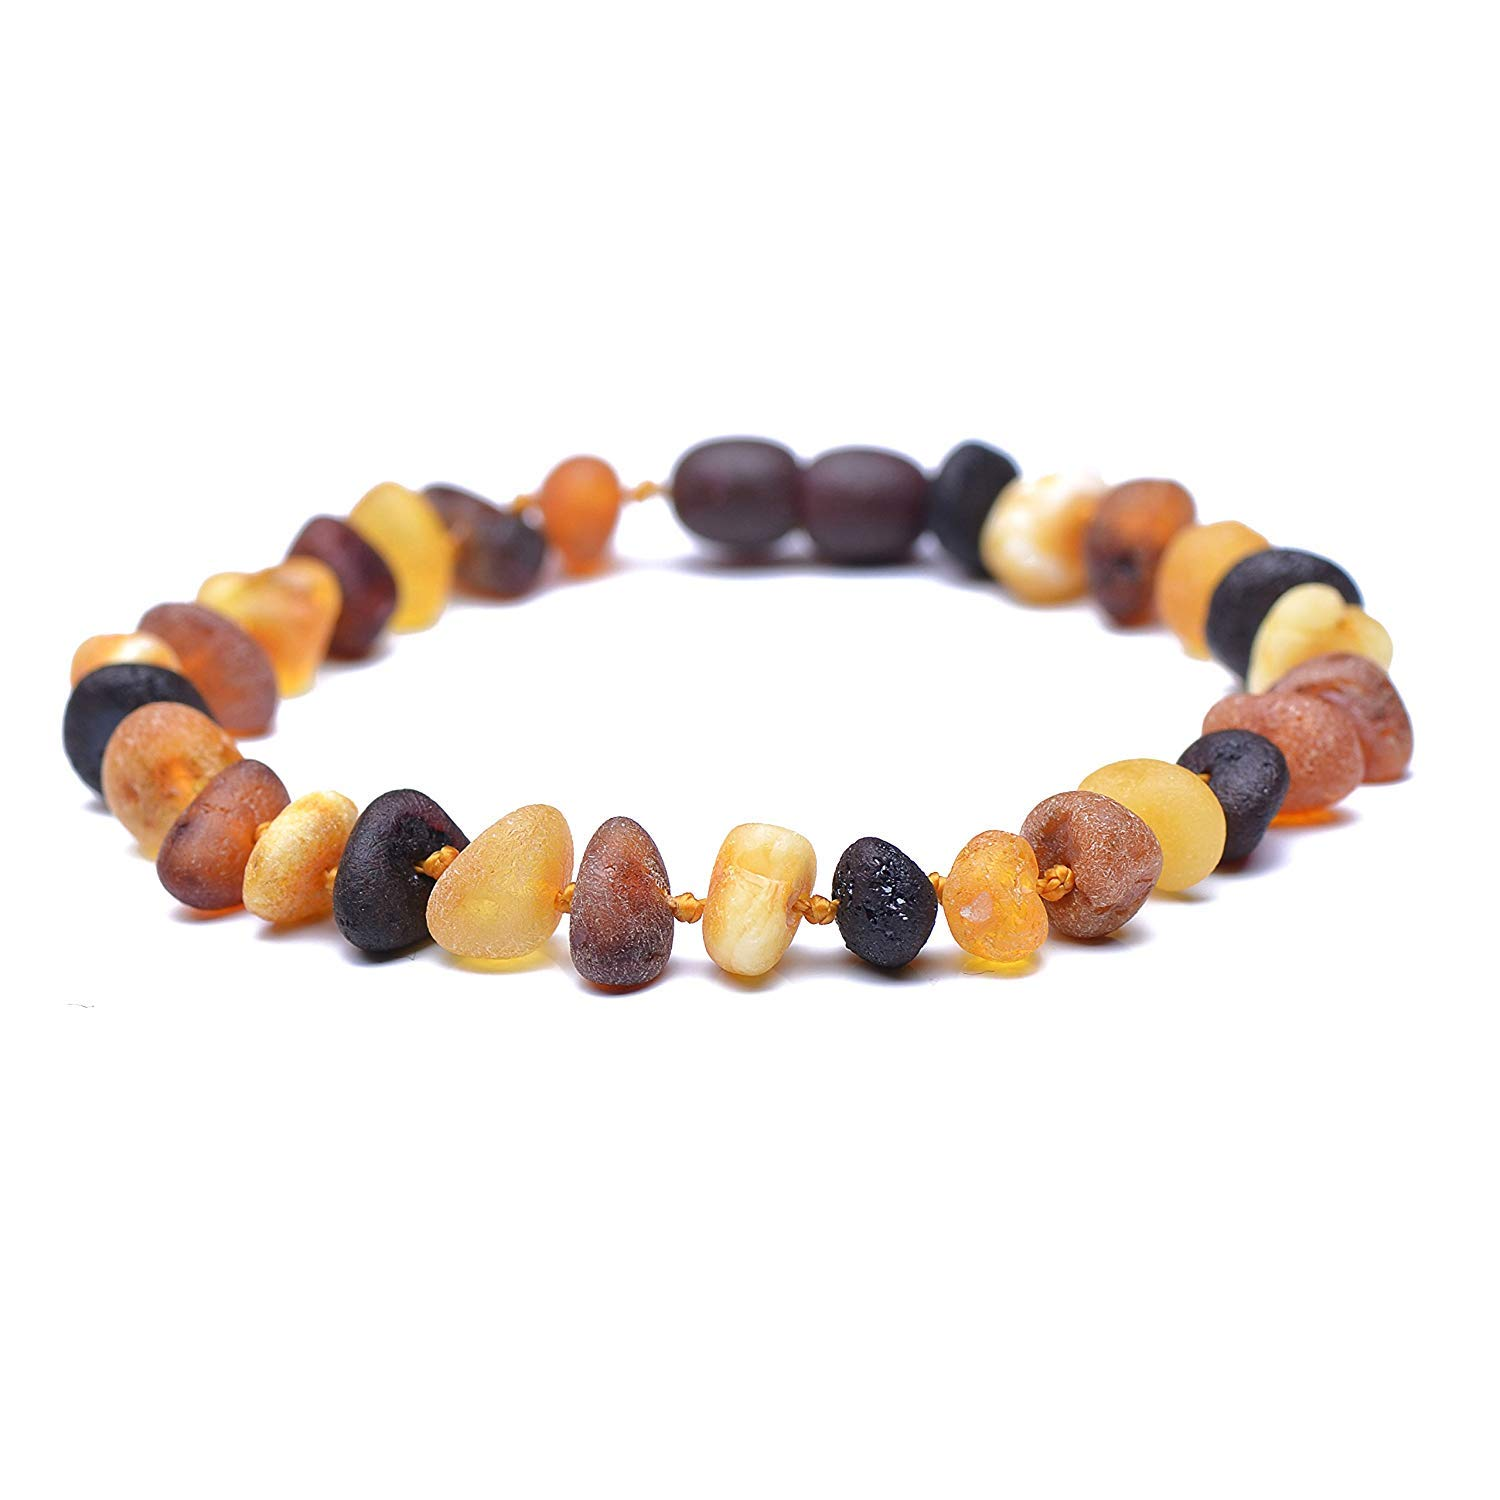 Raw Baltic Amber Bracelet for Adults - Authentic Certified Baltic Amber - Knotted Between Beads - with Screw Clasp - Genuine Baltic Amber (7.8 Inches, Mixed5) by Genuine Amber